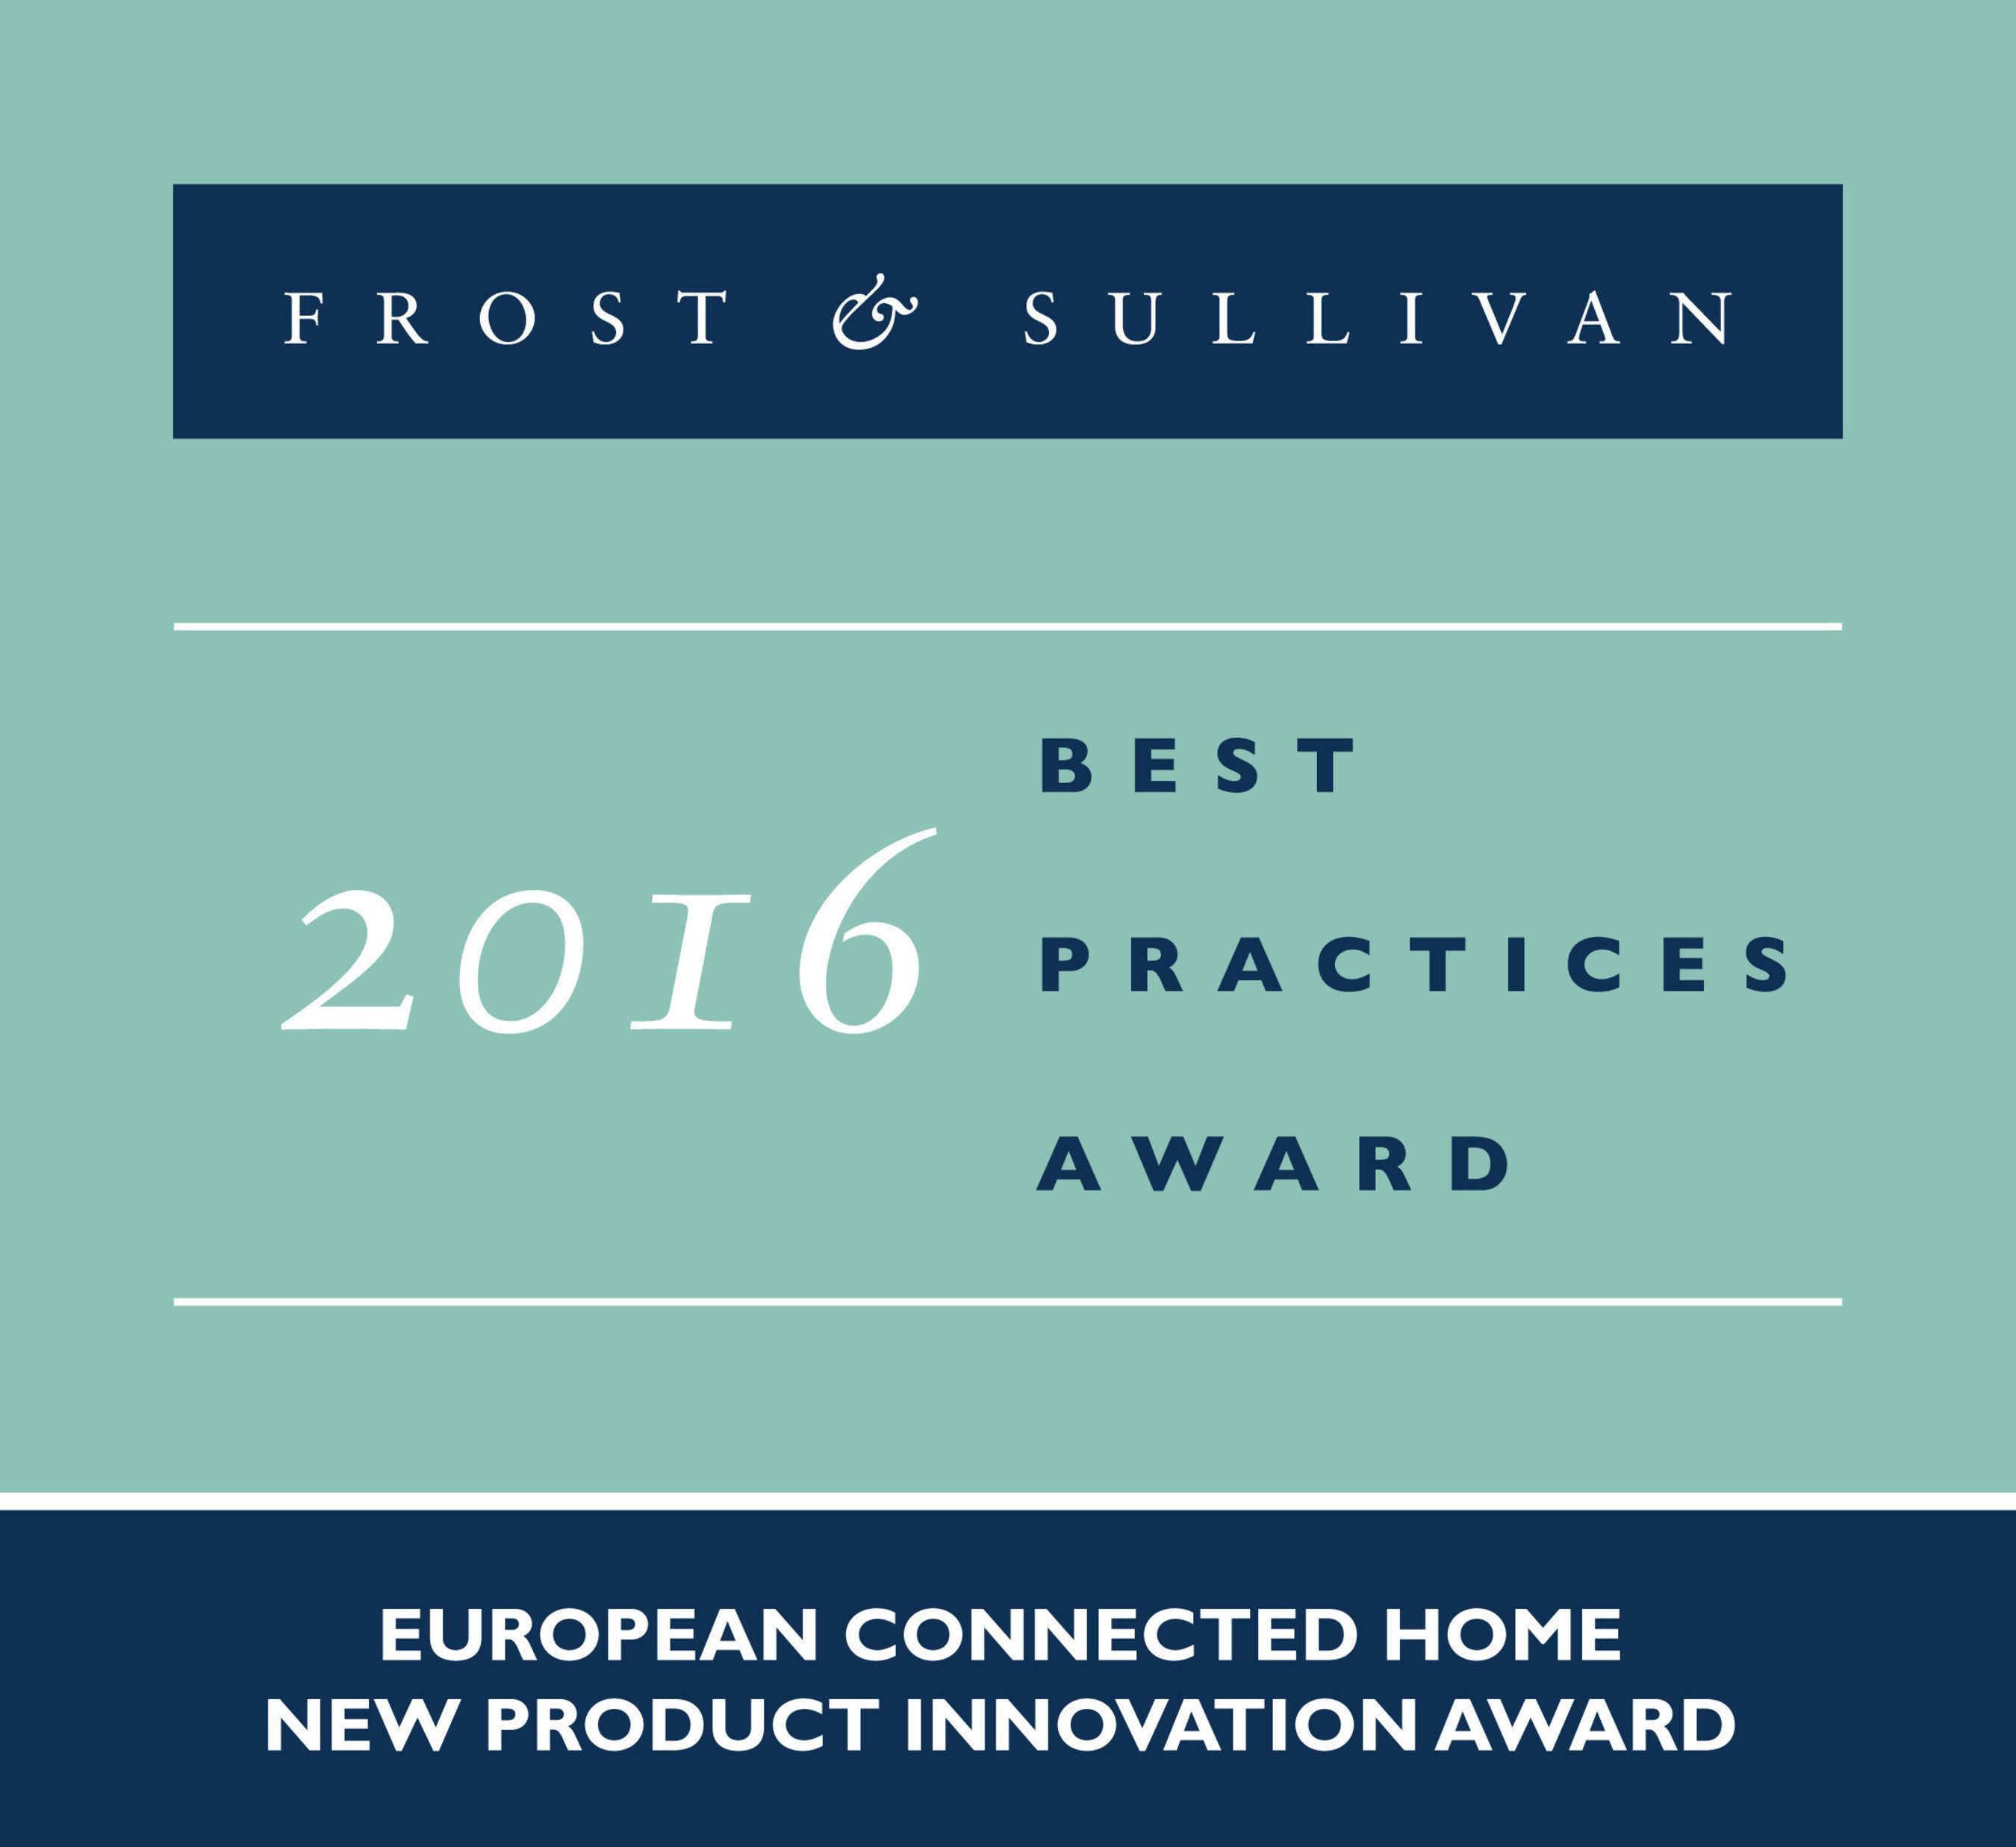 Deutsche Telekom Receives 2016 European Connected Home New Product Innovation Award